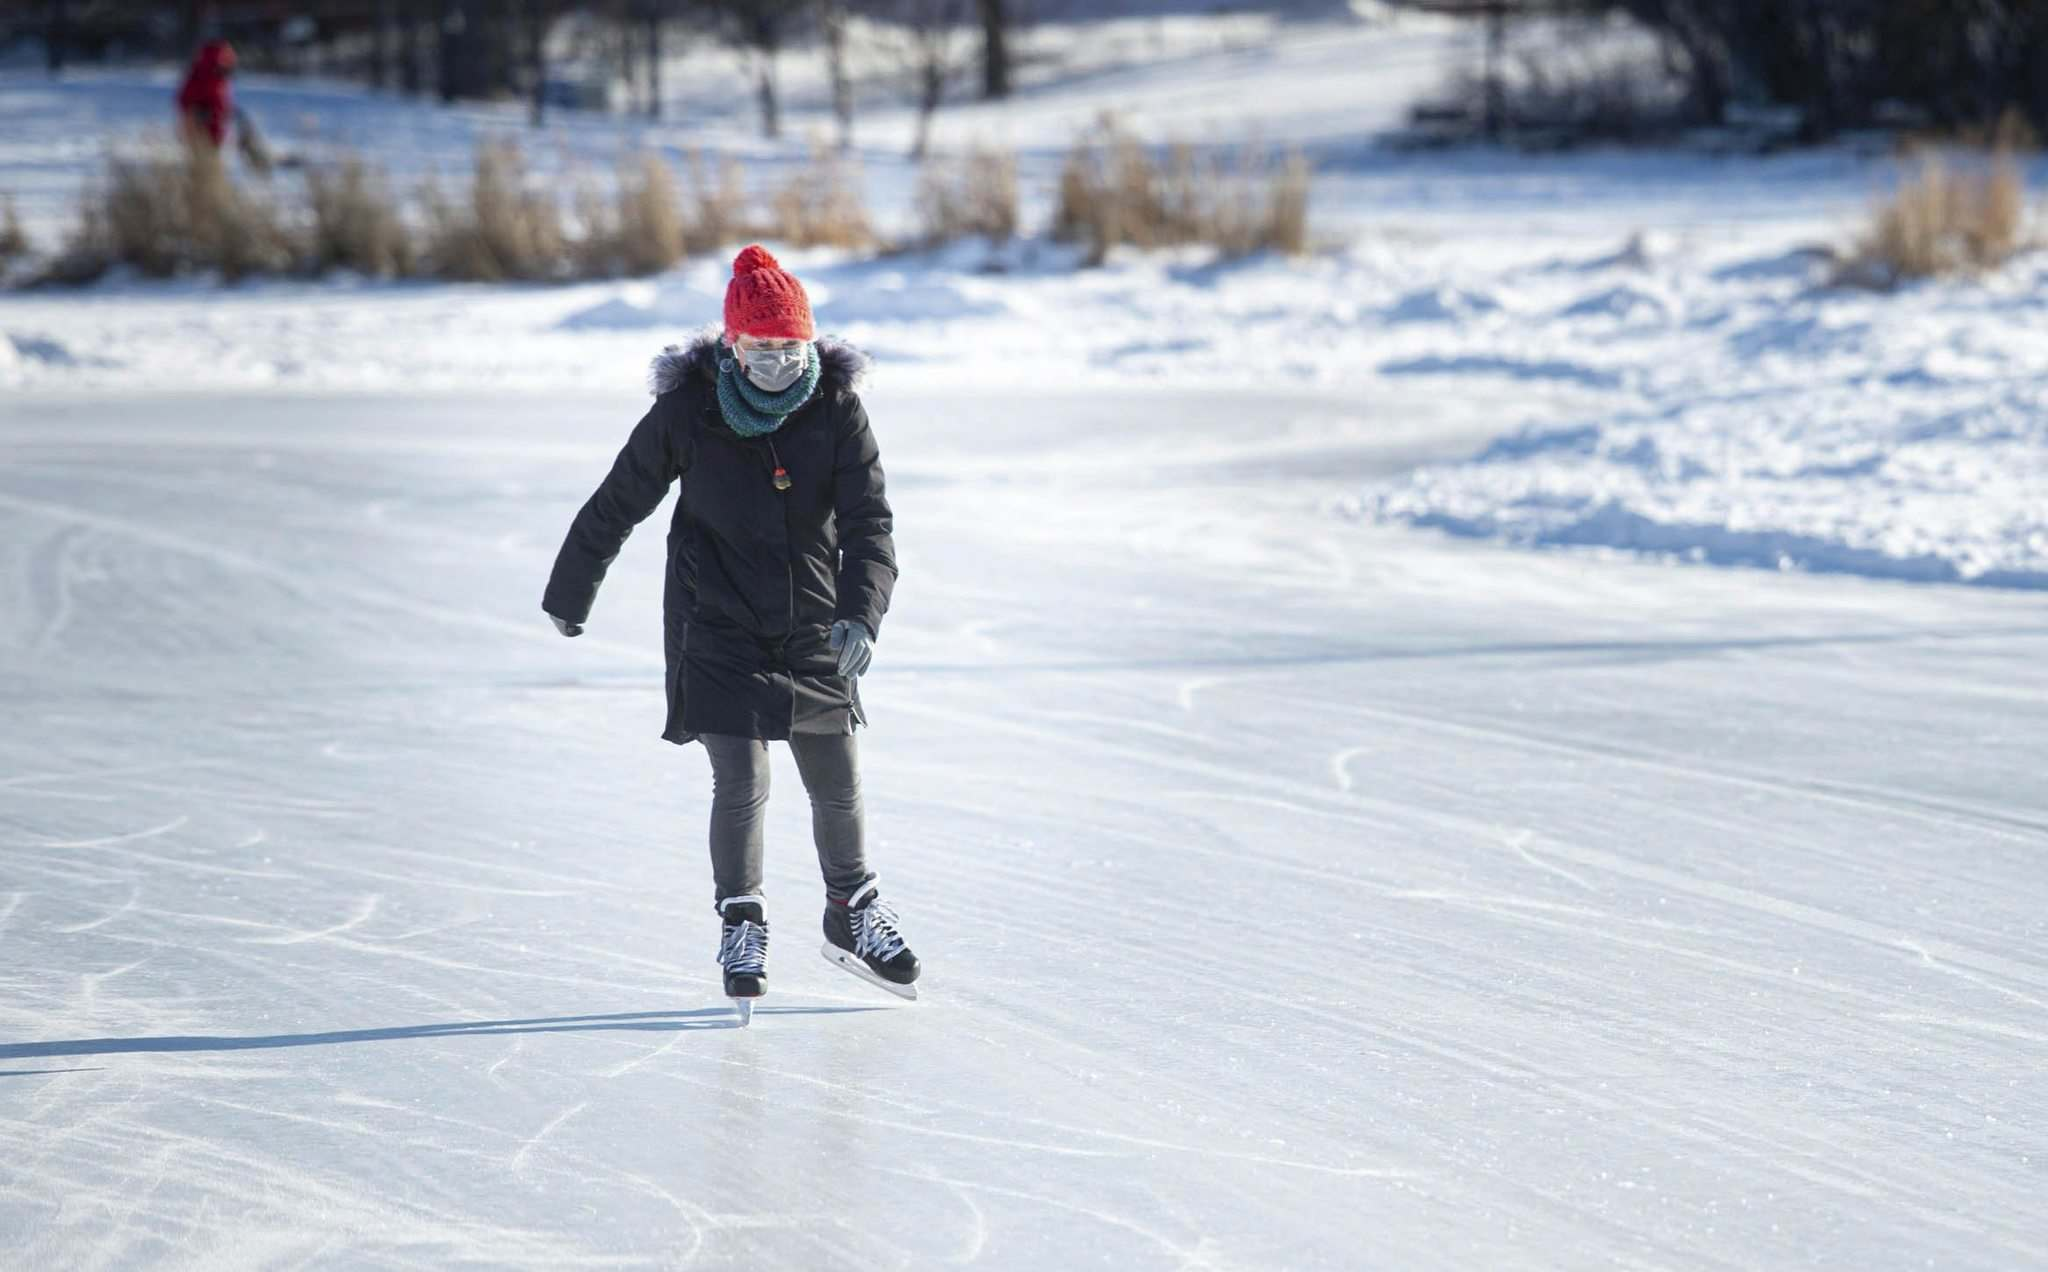 C'Jae Breiter takes to the ice of the Assiniboine Park duck pond despite the frigid temperatures Tuesday afternoon.